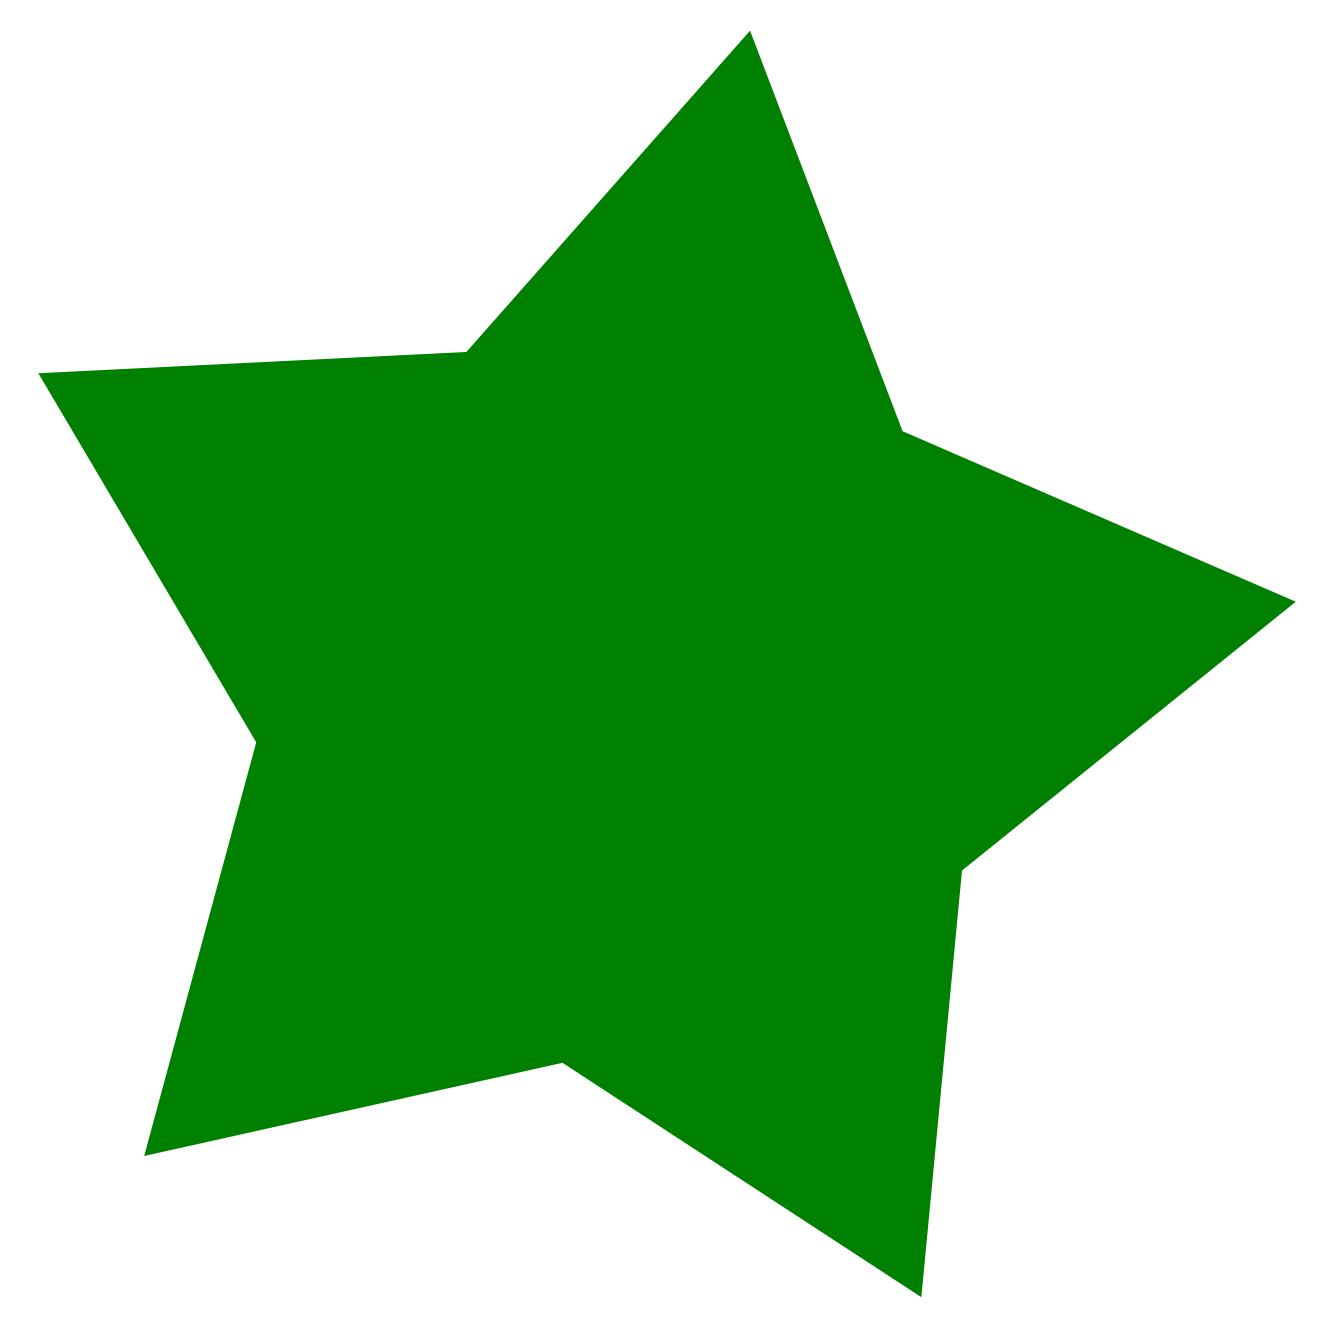 Green star clipart graphic transparent stock West Wickham Market graphic transparent stock